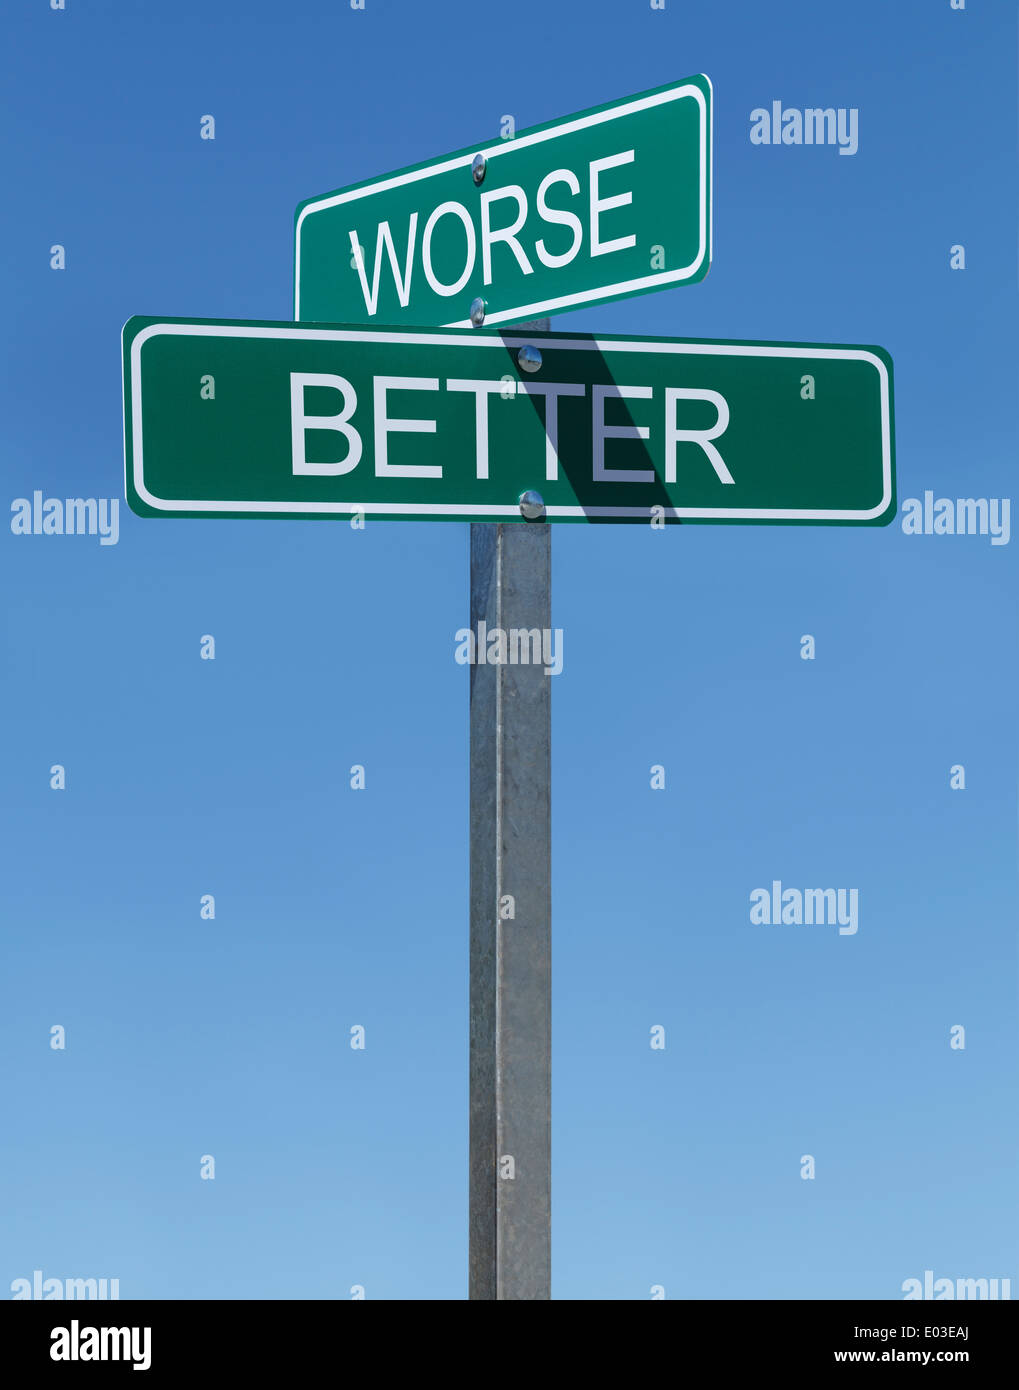 Green Street Signs Better and Worse on Metal Pole With Blue Sky Background. - Stock Image